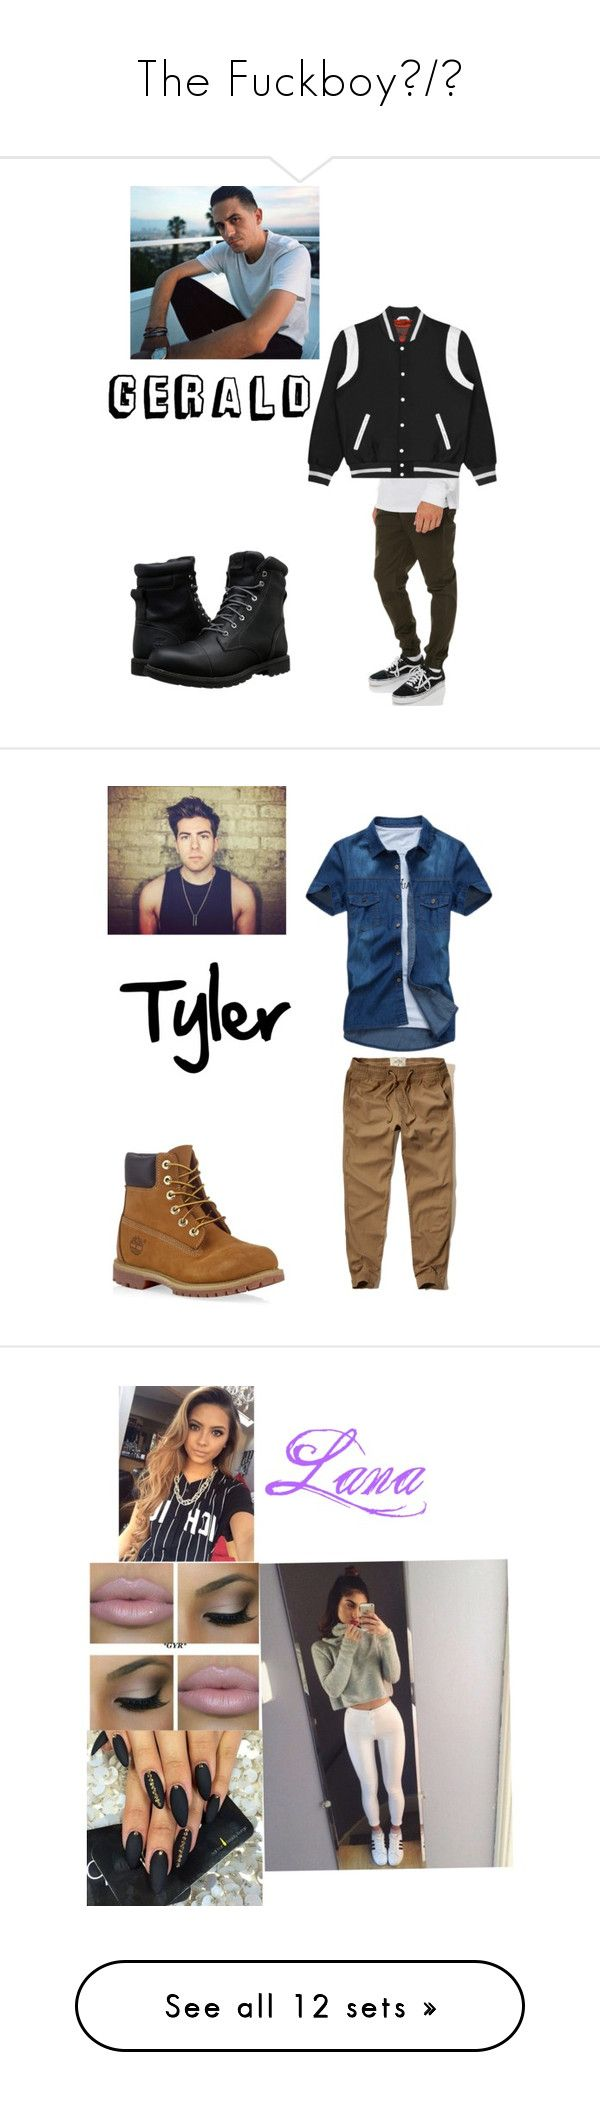 """""""The Fuckboy😈/😇"""" by gamergirl247 ❤ liked on Polyvore featuring Afends, Timberland, men's fashion, menswear, Hollister Co., tops, hoodies, hoodie top, sweatshirt hoodies and hooded sweatshirt"""